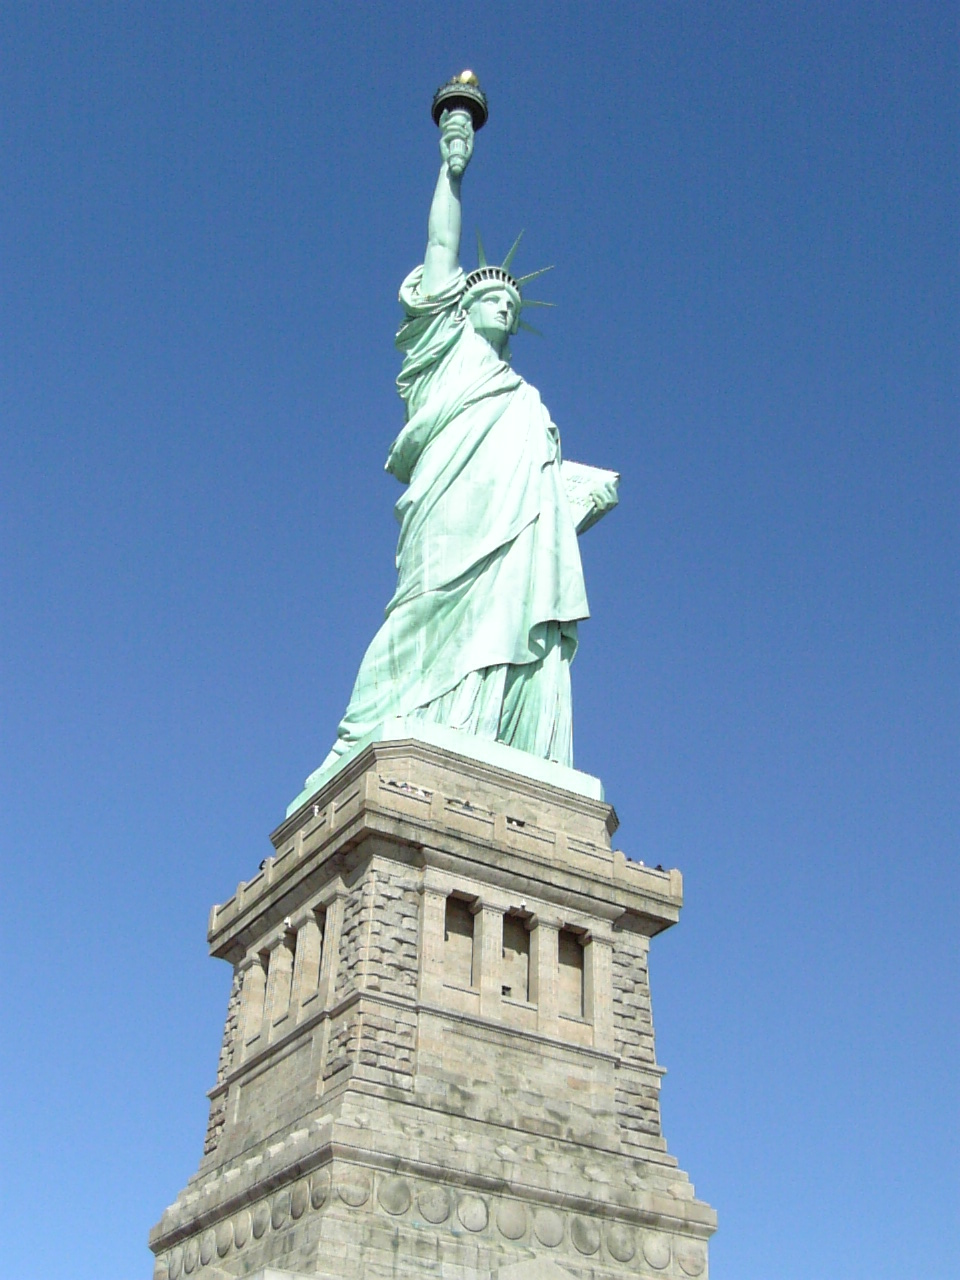 Statue of Liberty②